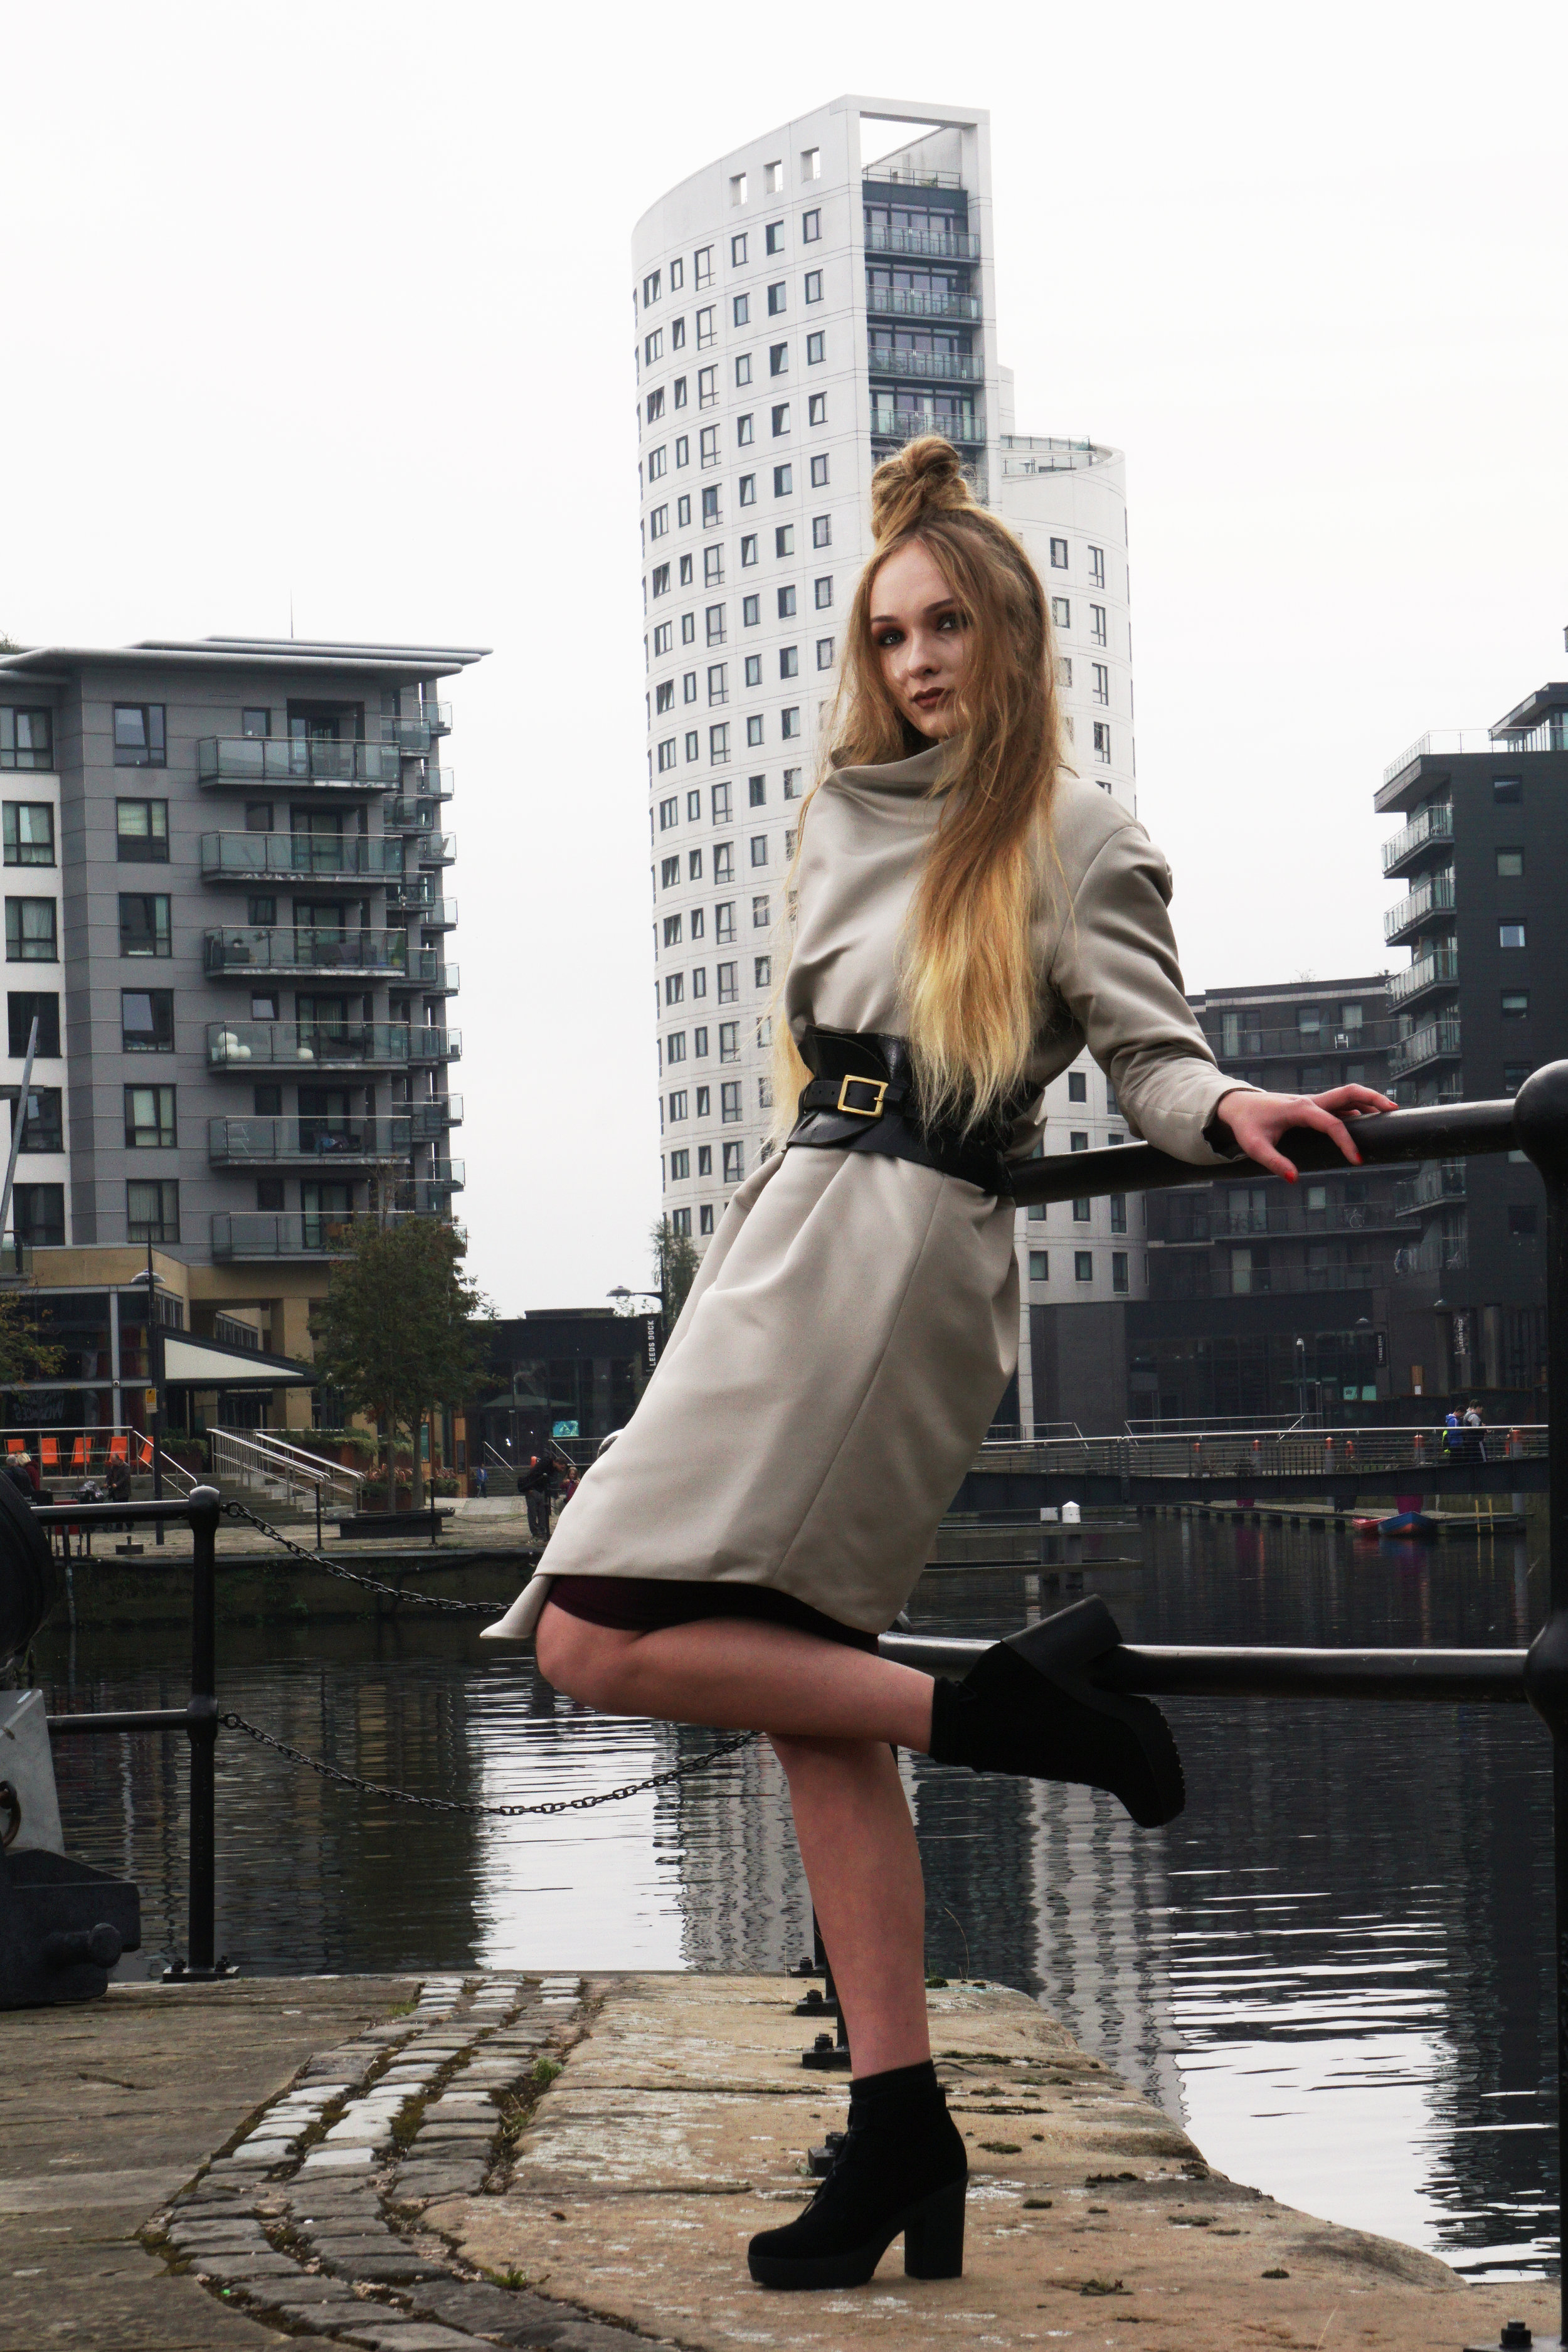 zaramia-ava-zaramiaava-leeds-fashion-designer-ethical-sustainable-taupe-jacket-versatile-plum-drape-mika-crop-top-yoko-skirt-leeds-dock-grunge-4